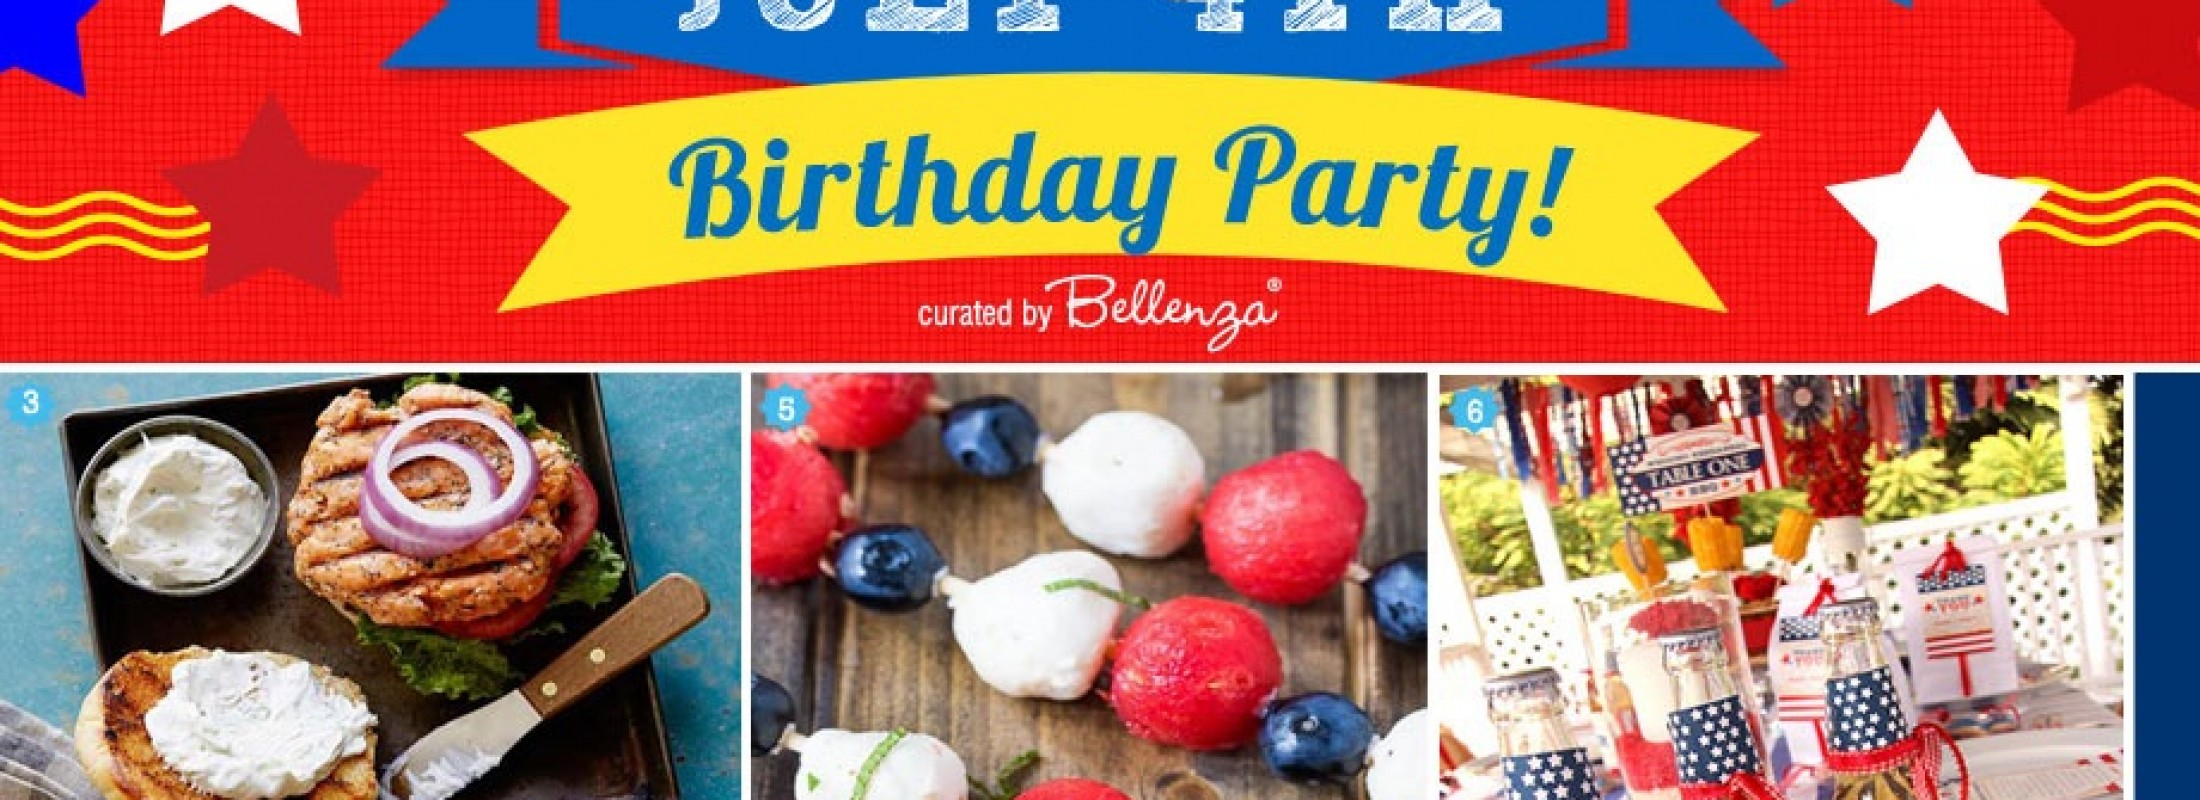 Simple July 4 Birthday Party ideas